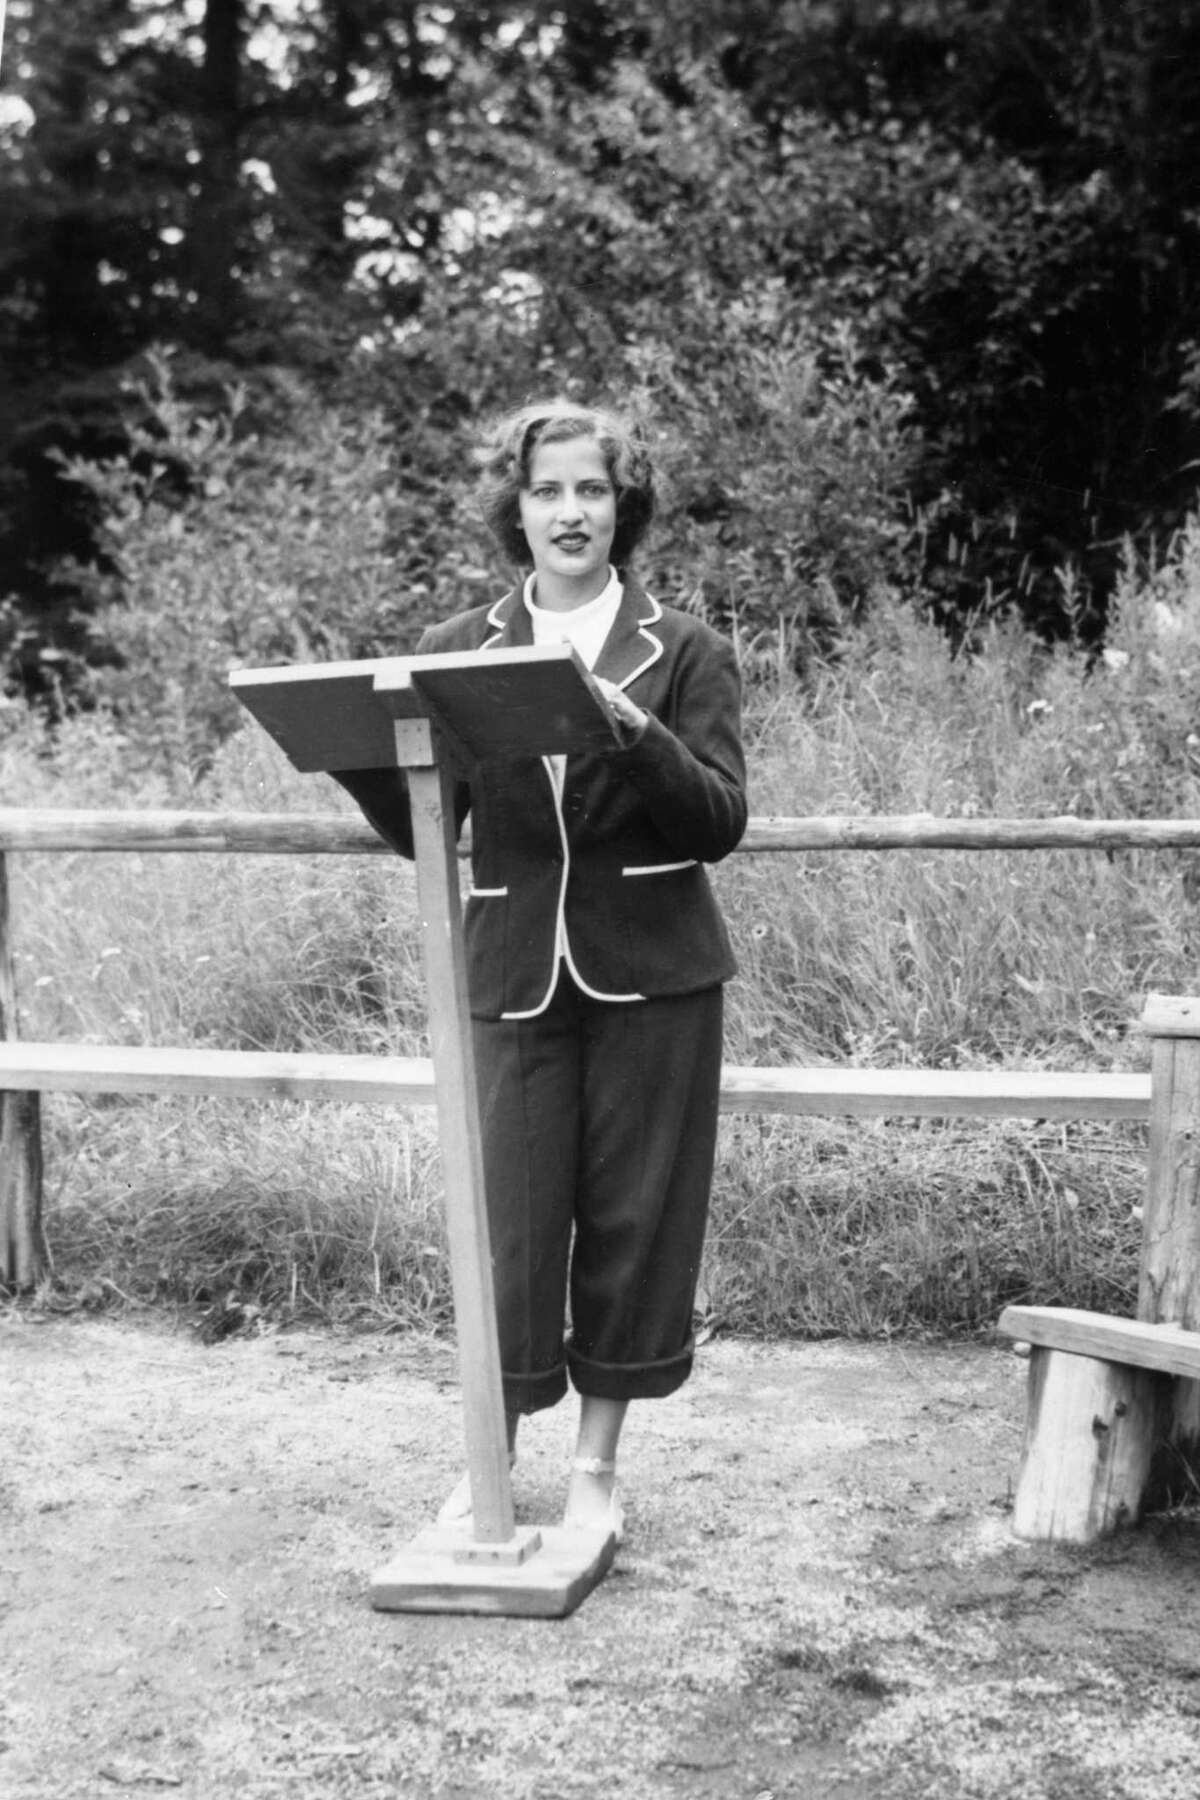 This 1948 photo provided by the Supreme Court shows Ruth Bader, at age 15, giving a sermon as the camp rabbi at Che-Na-Wah in Minerva, N.Y. Supreme Court Justice Ruth Bader Ginsburg died at her home in Washington, on Sept. 18, 2020, the Supreme Court announced. (Collection of the Supreme Court of the United States via AP)